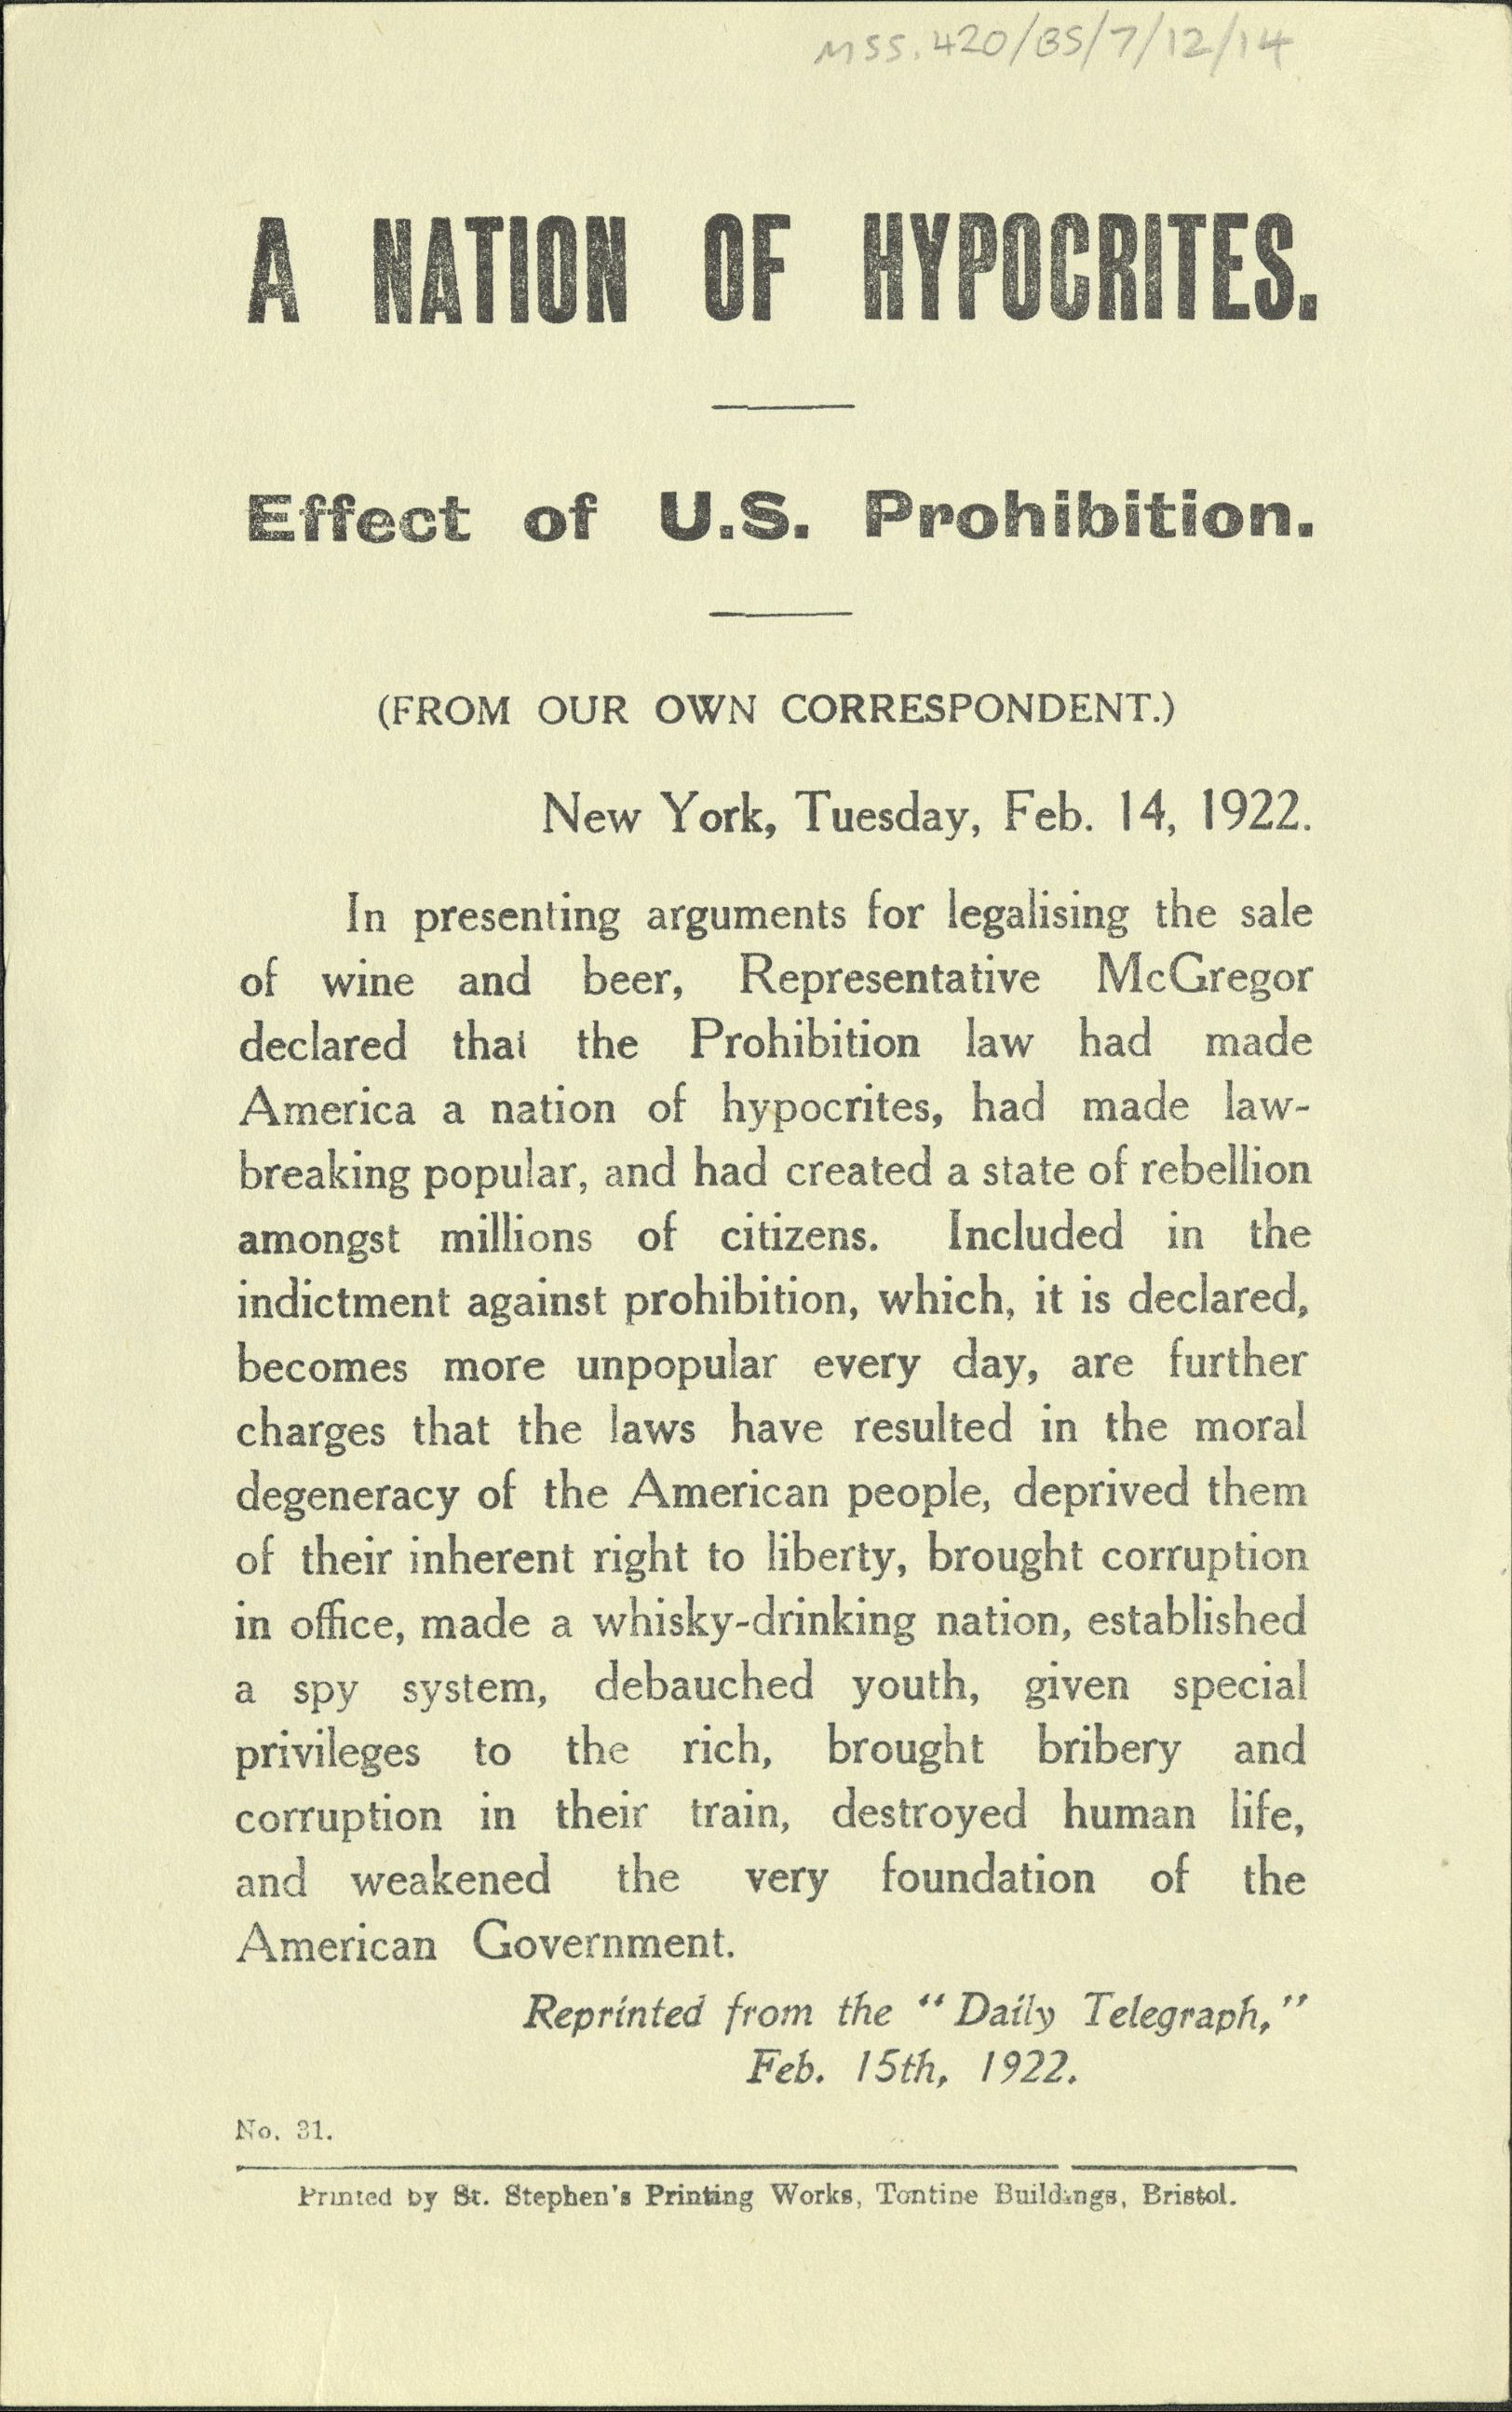 An essay on the prohibition and its effect in the united states between 1920 and 1933